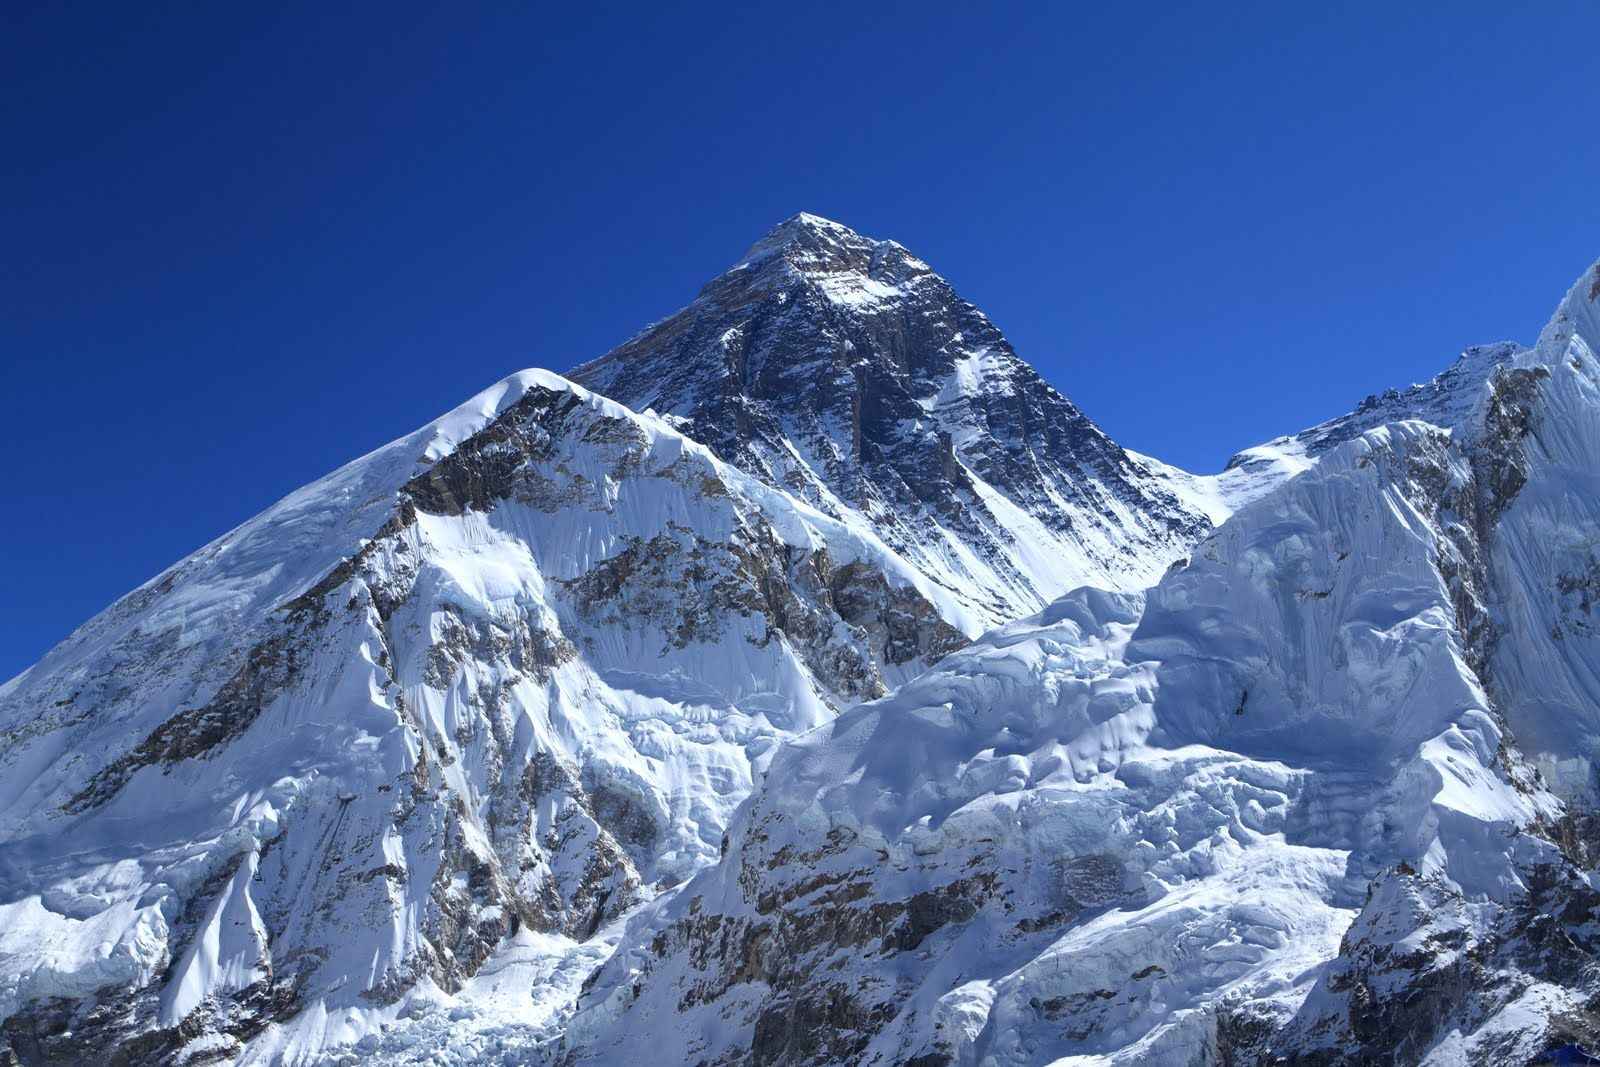 Mount Everest Wallpapers and Background Images   stmednet 1600x1067